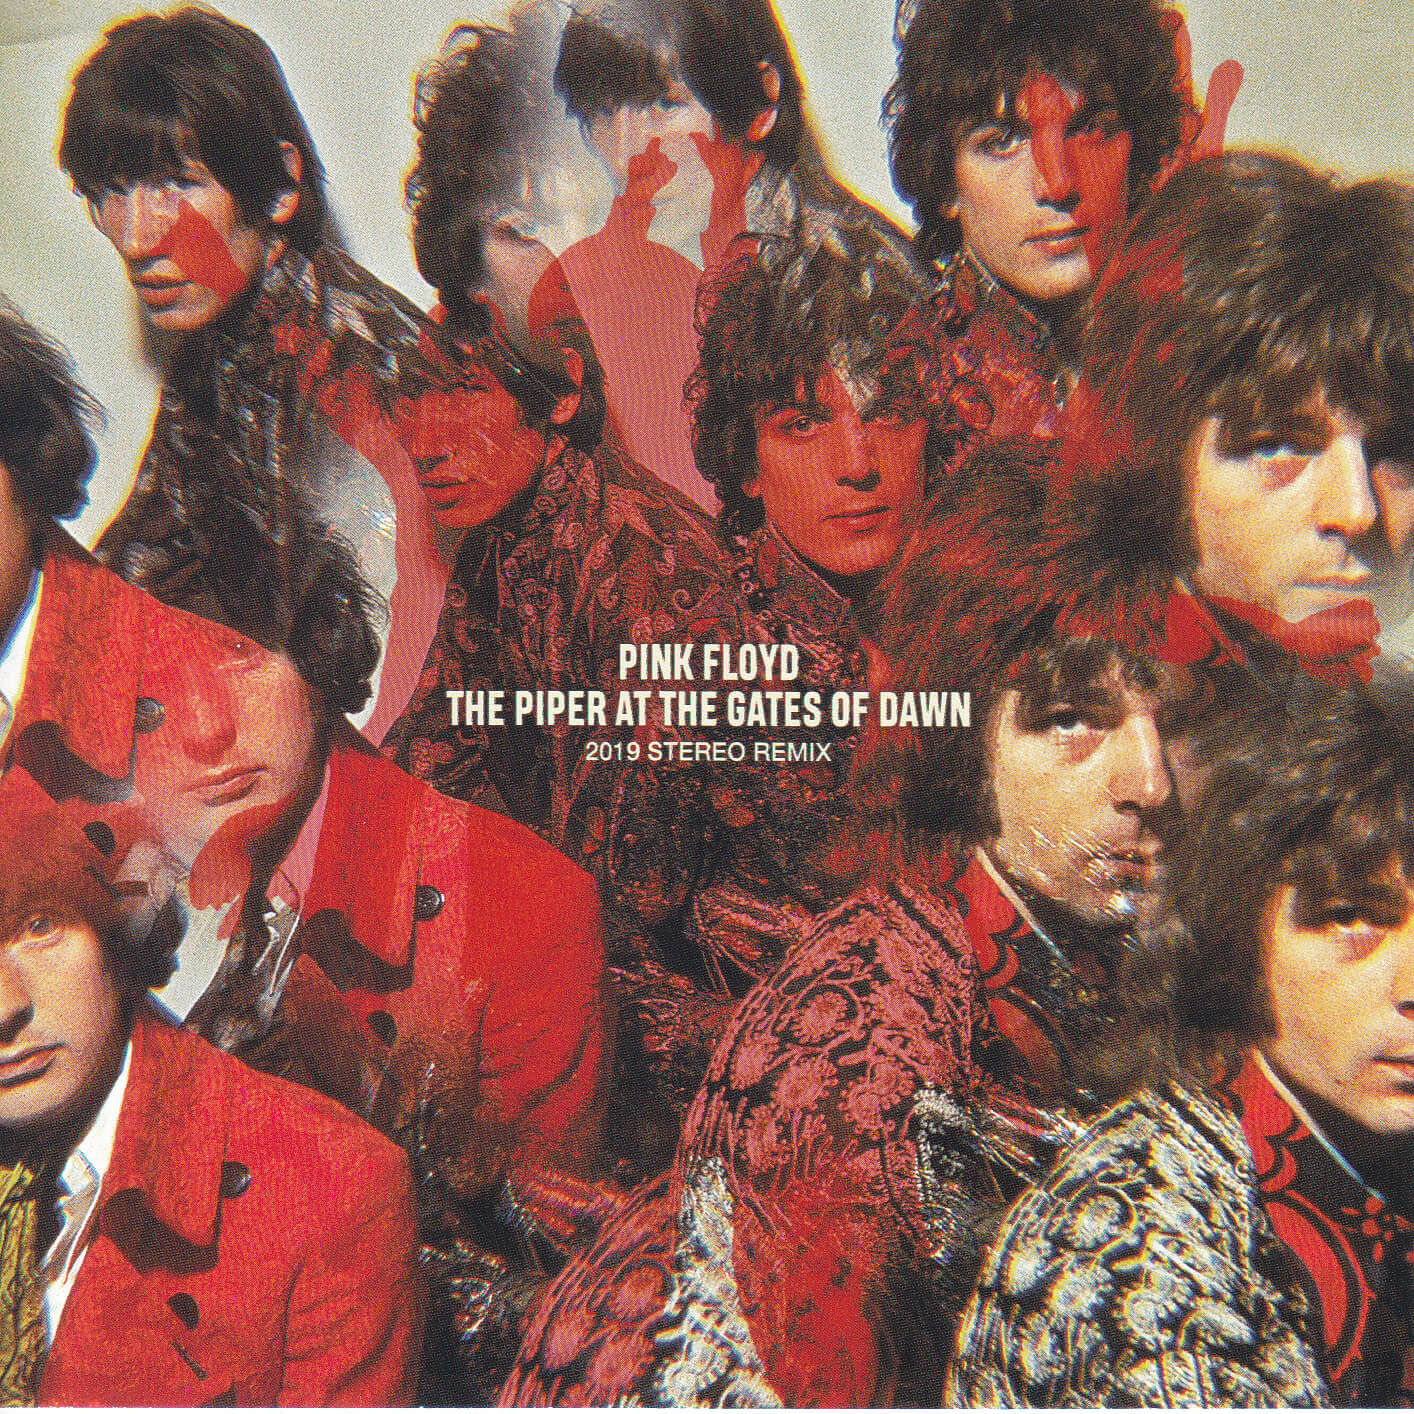 pink floyd the piper at the gates of dawn 2019 stereo remix 1cd non label discjapan. Black Bedroom Furniture Sets. Home Design Ideas